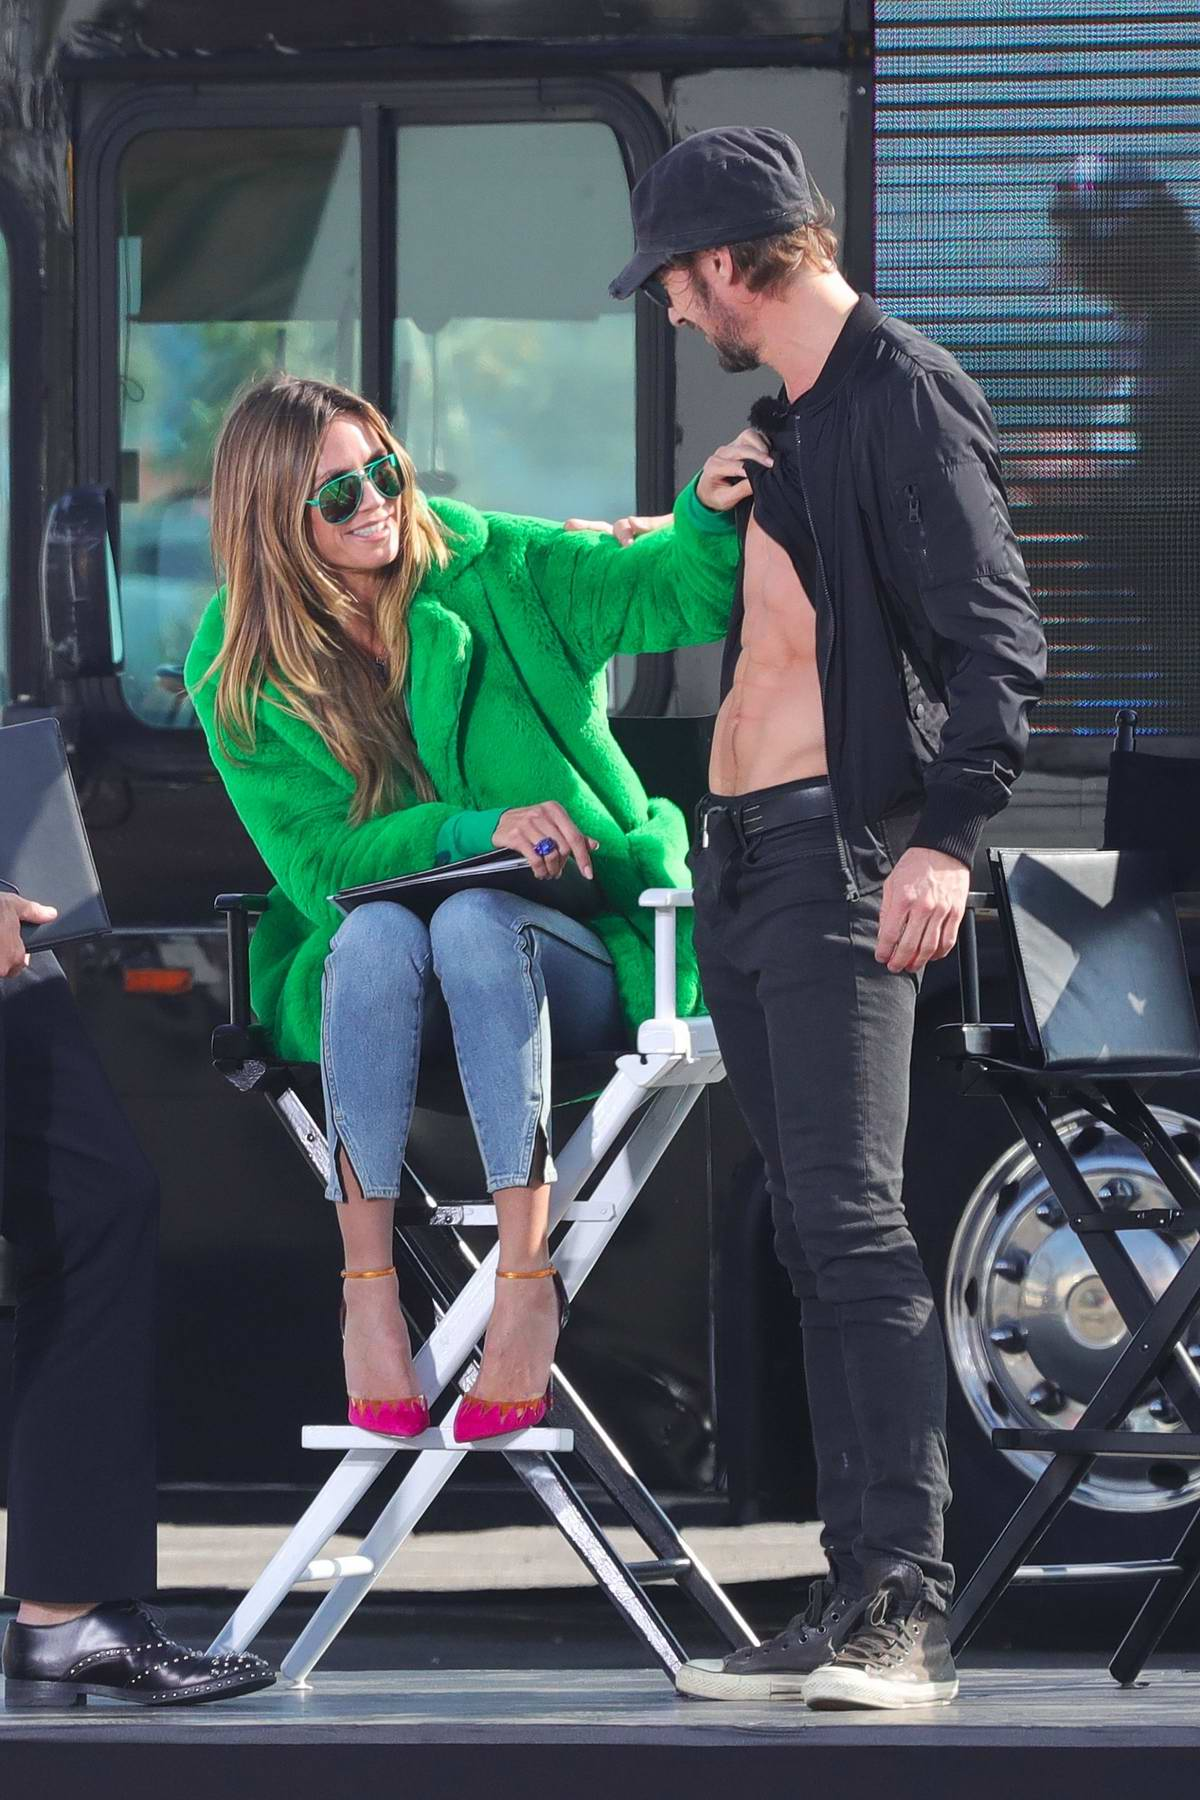 Heidi Klum spotted on the set of Germany's Next Top Model in Santa Monica, California